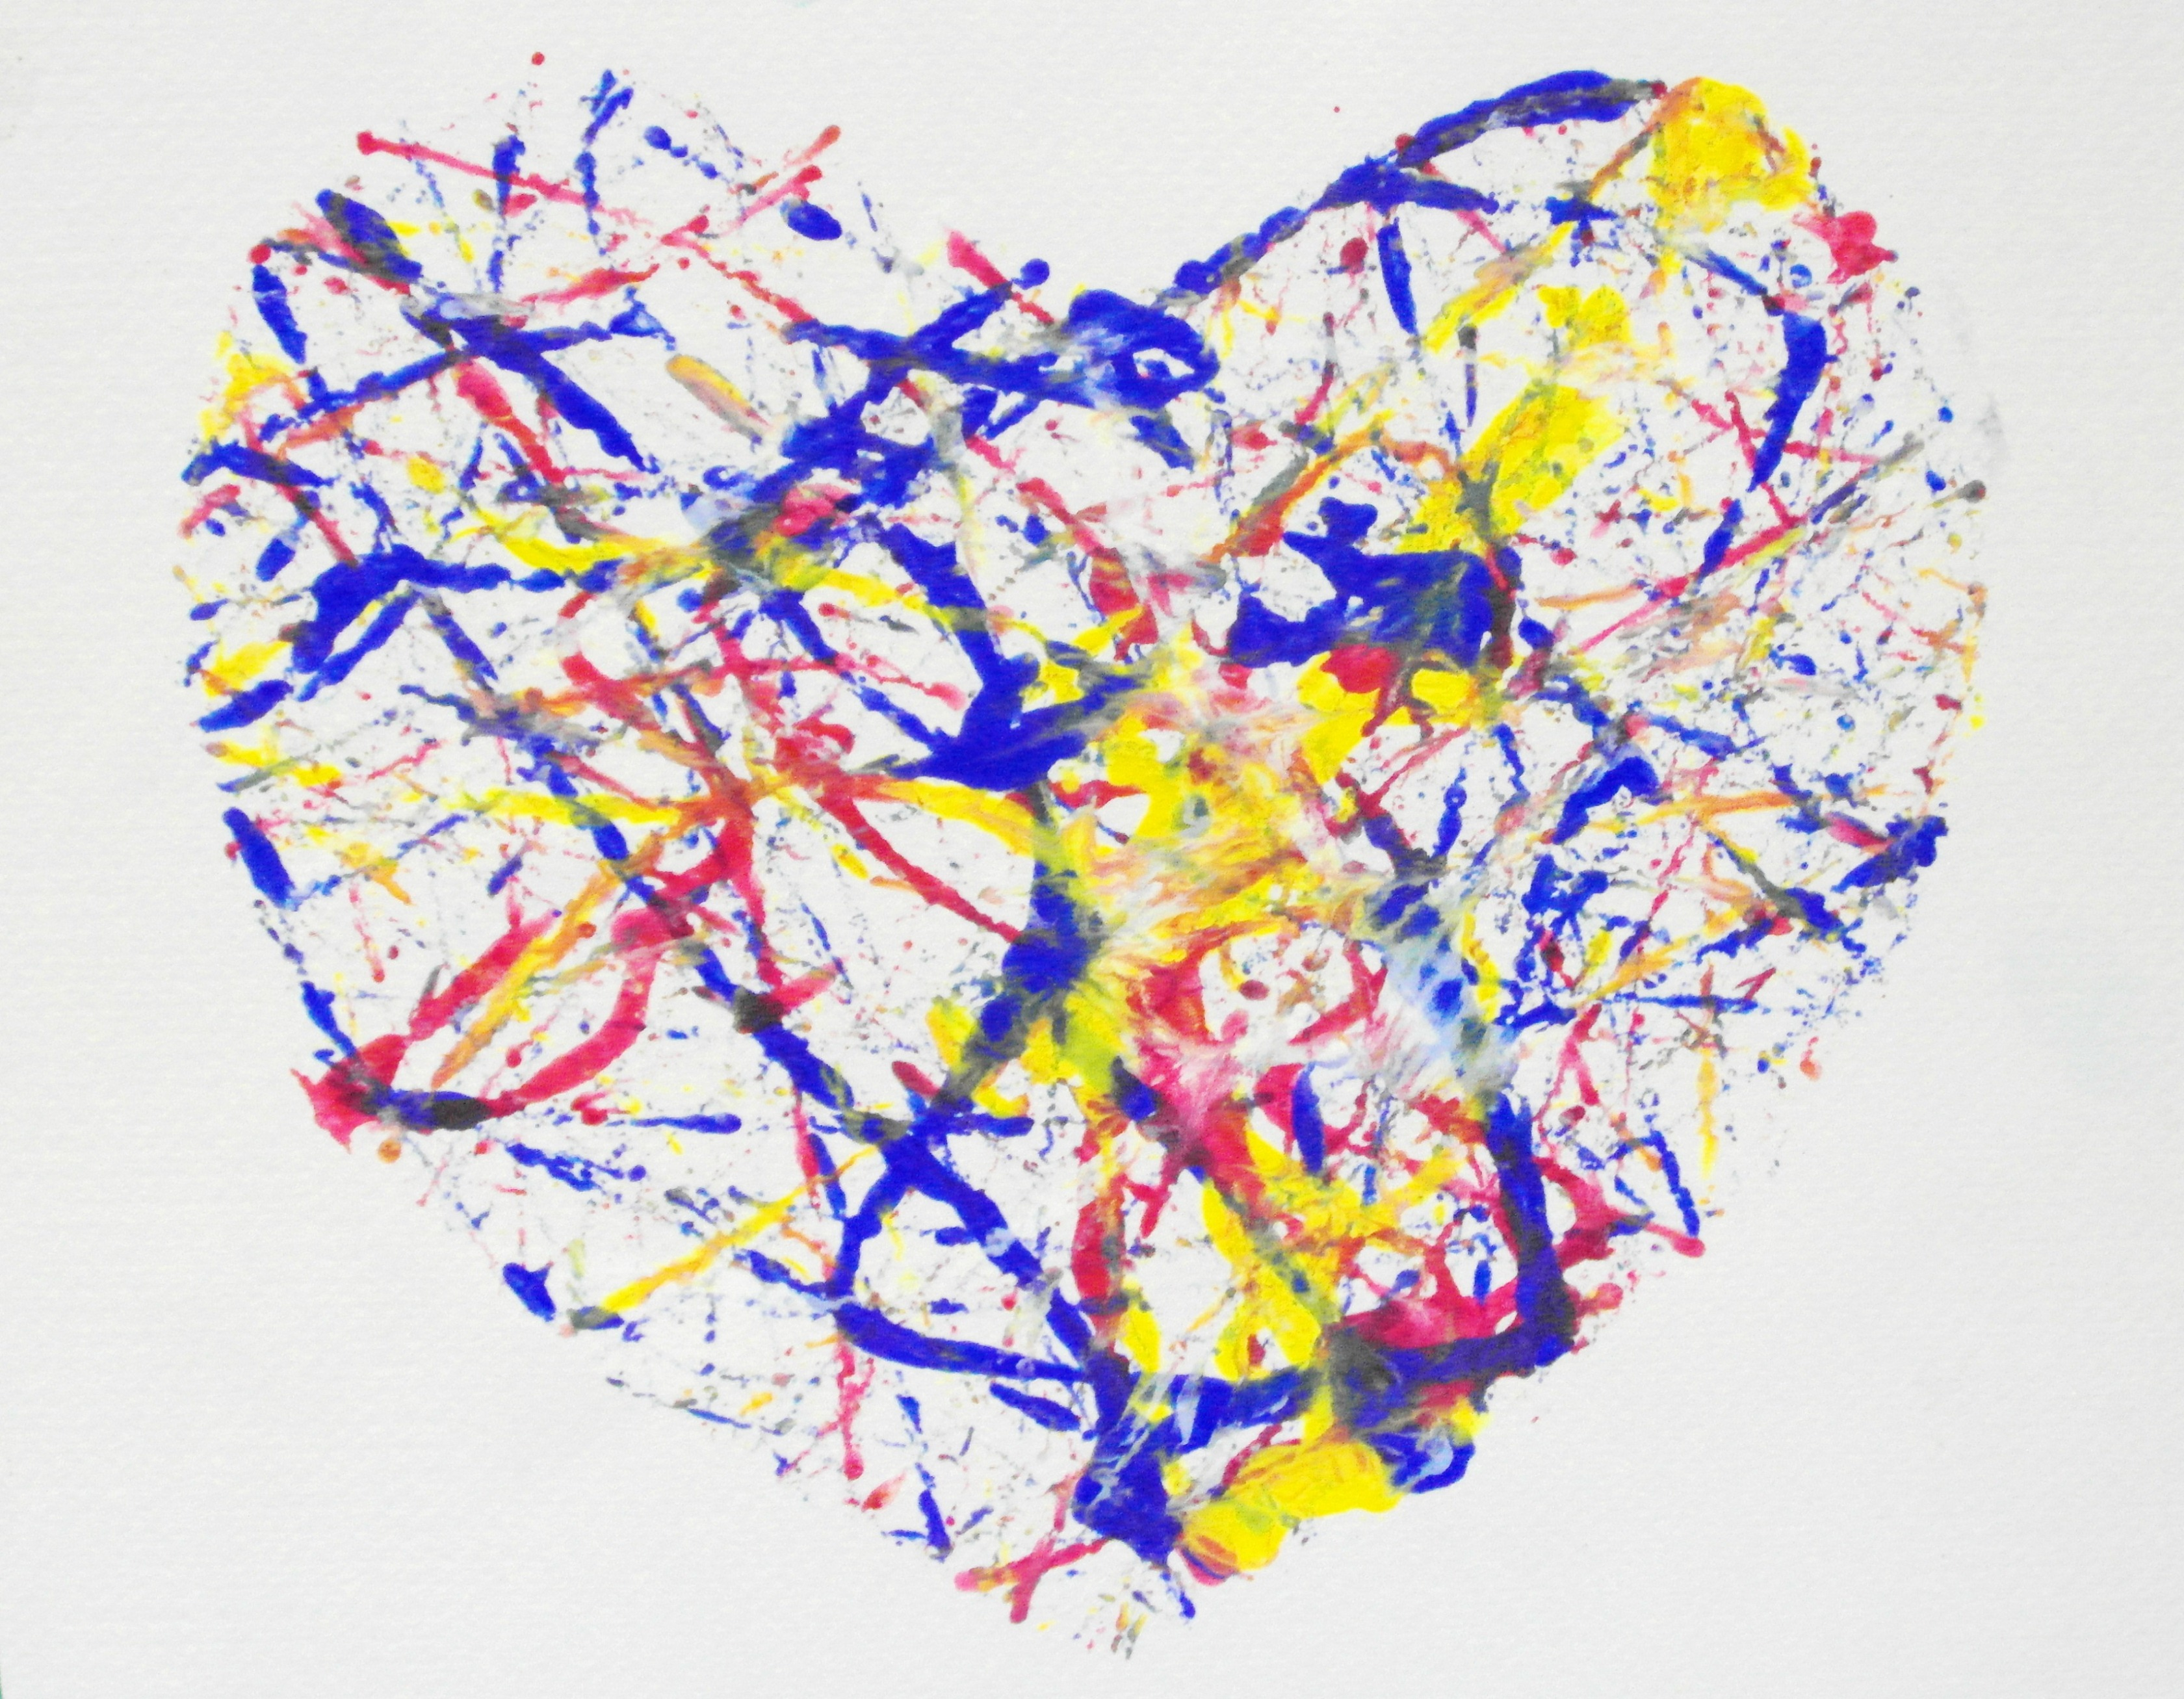 Heart Paint Splatter, Painting, Valentine, Splatter, Splats, HQ Photo